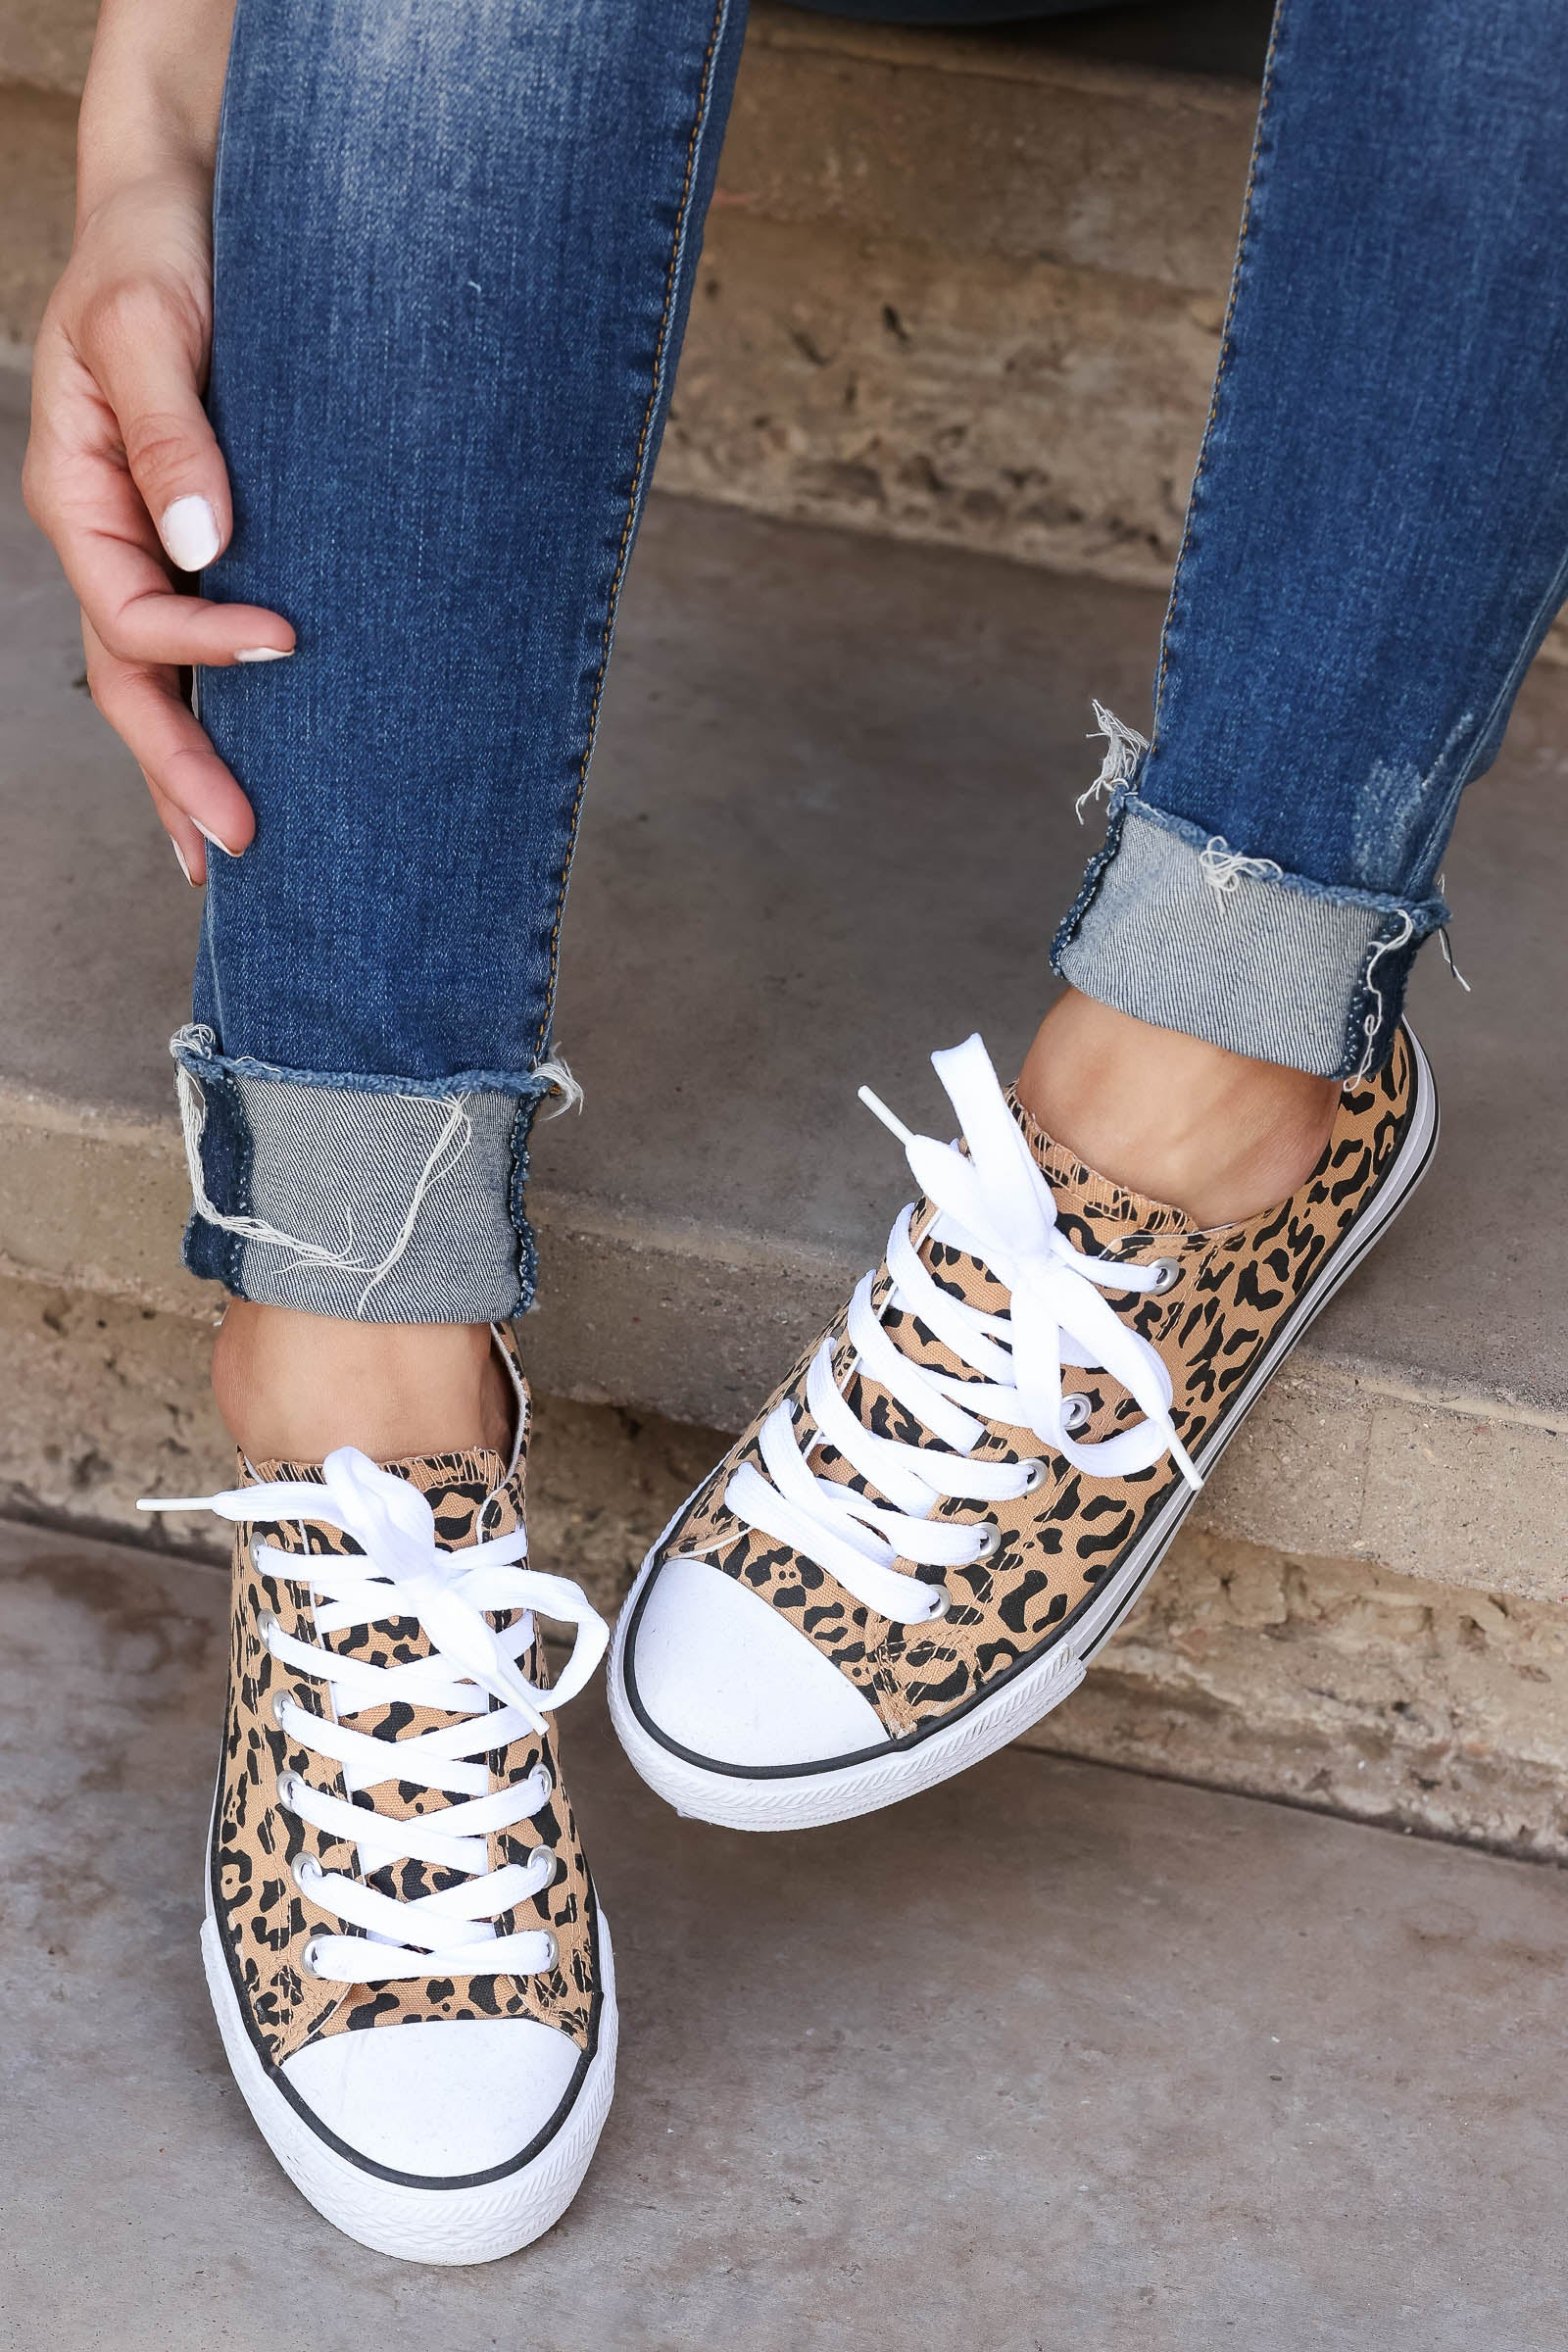 True Colors Sneakers - Leopard closet candy women's trendy leopard print lace up sneakers 1